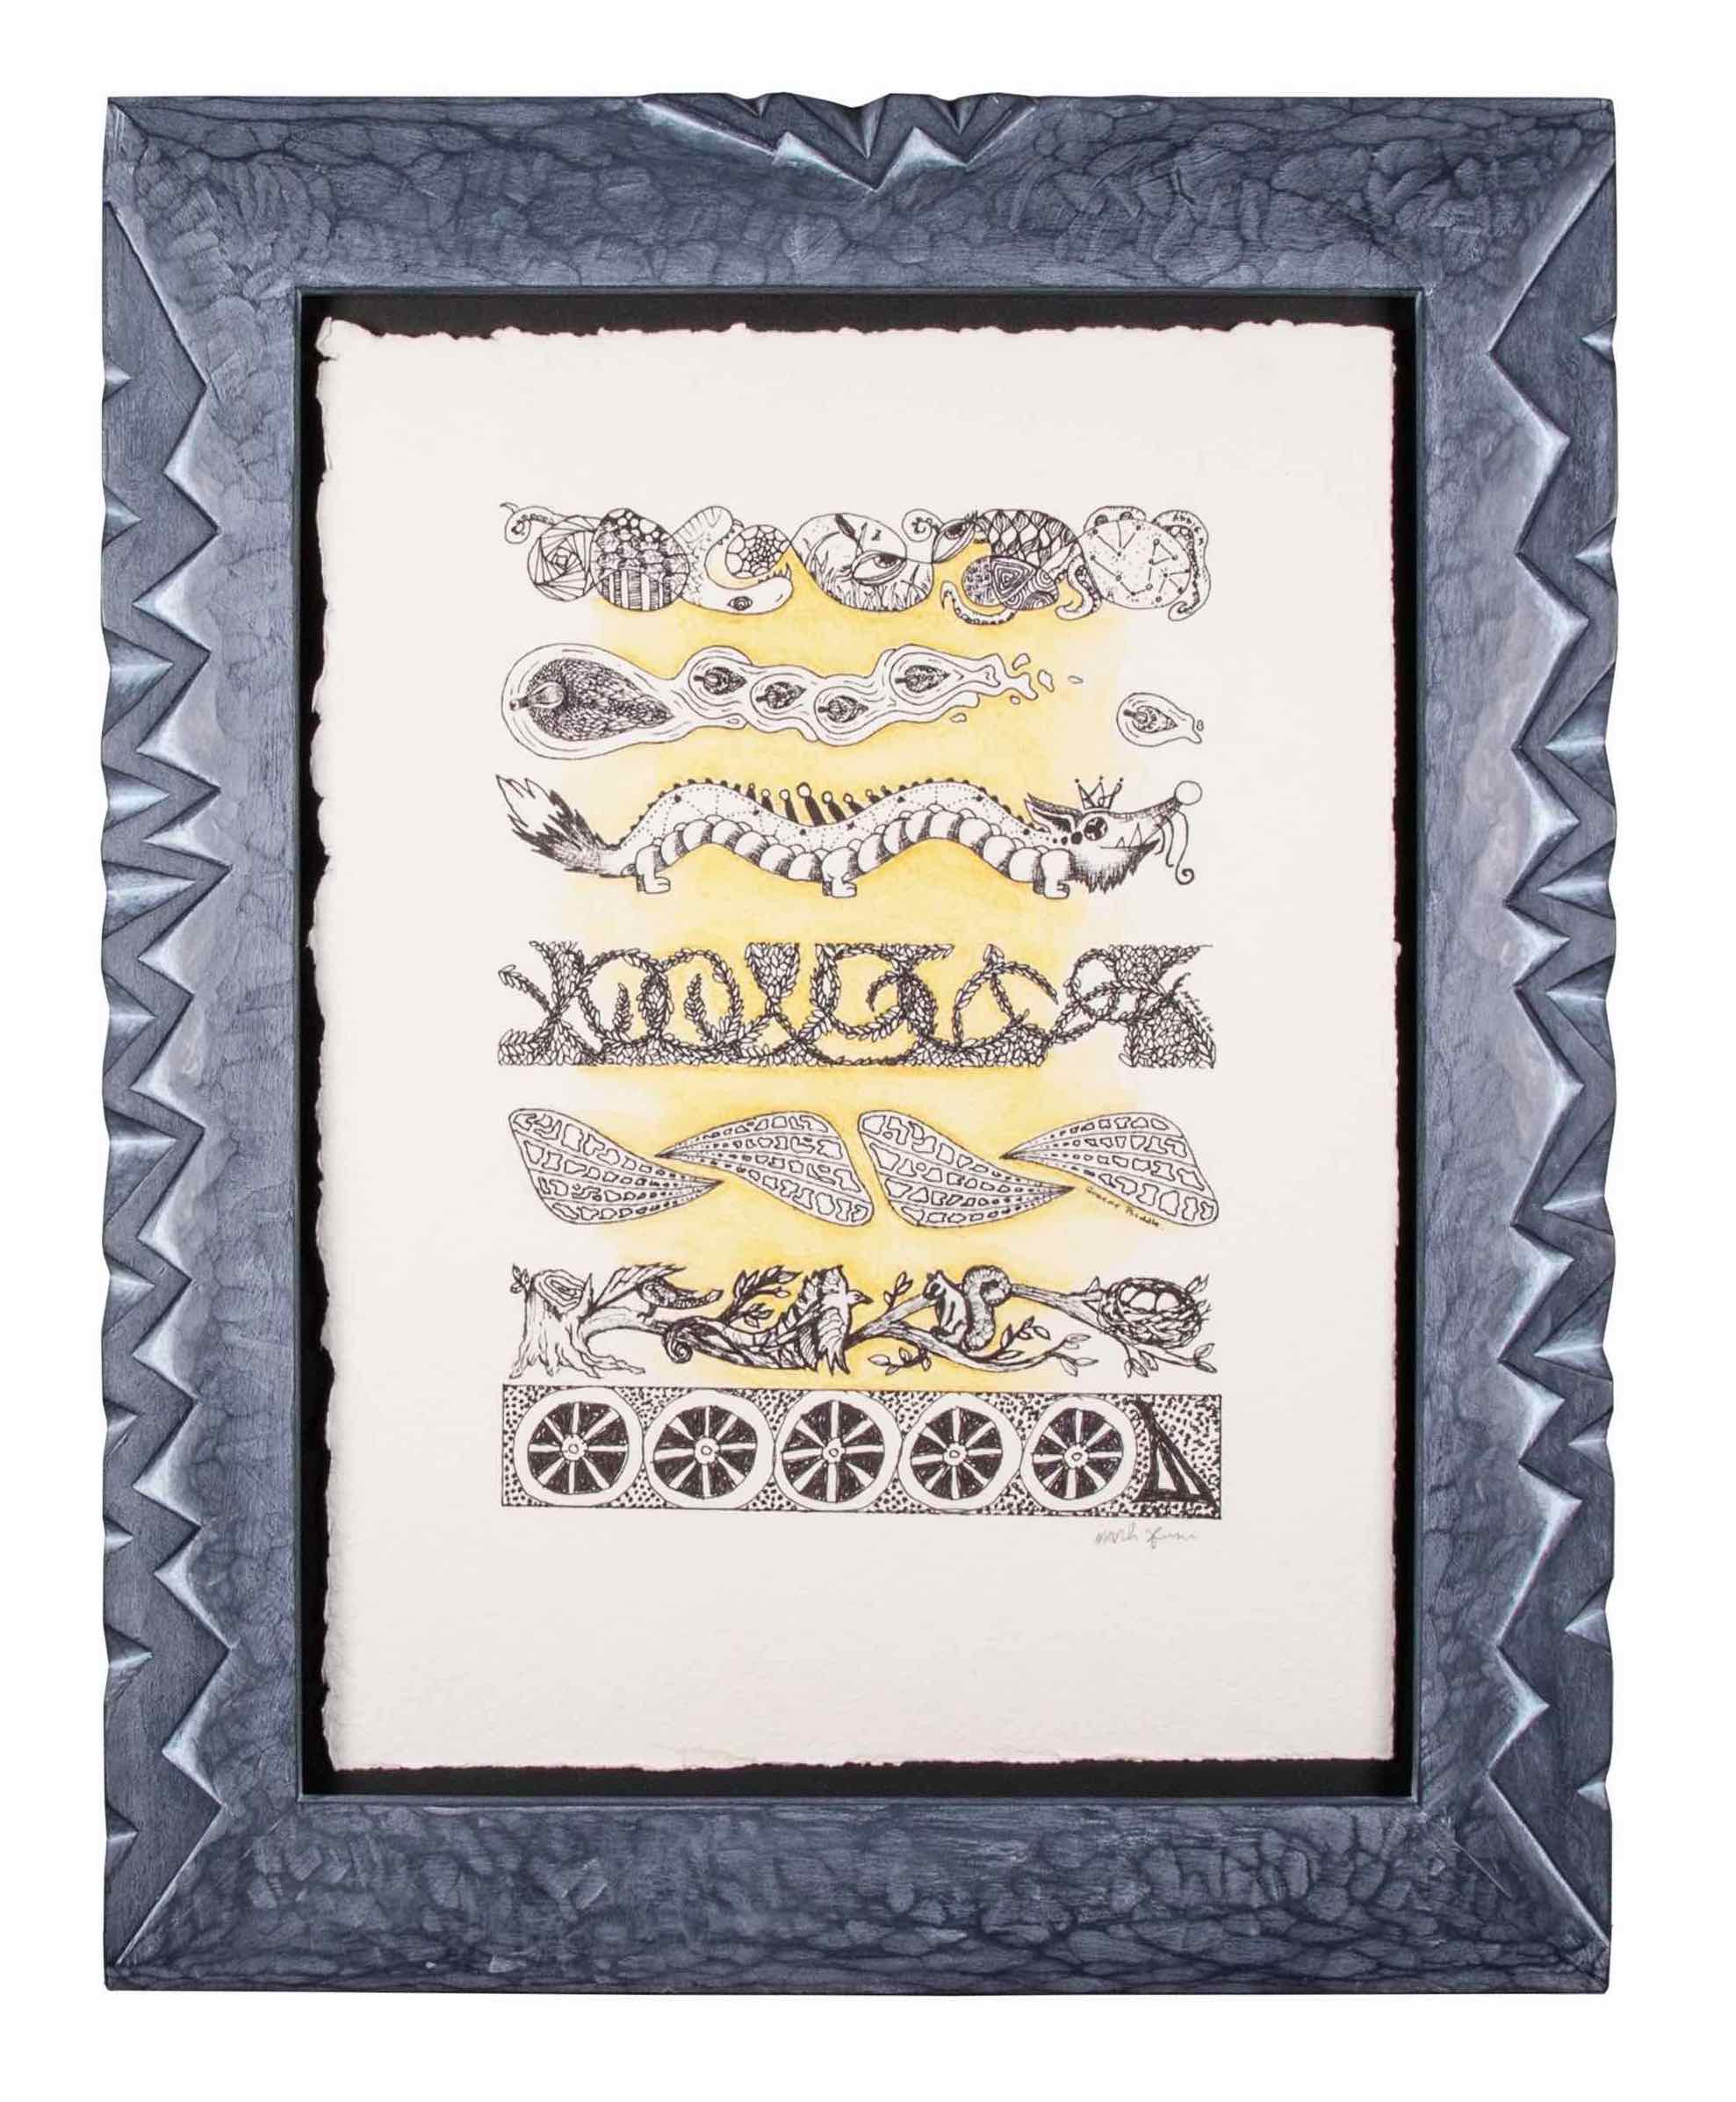 Echo Lake 2017- Blind Collaboration Drawing-   Frame carved by Mark Sfirri